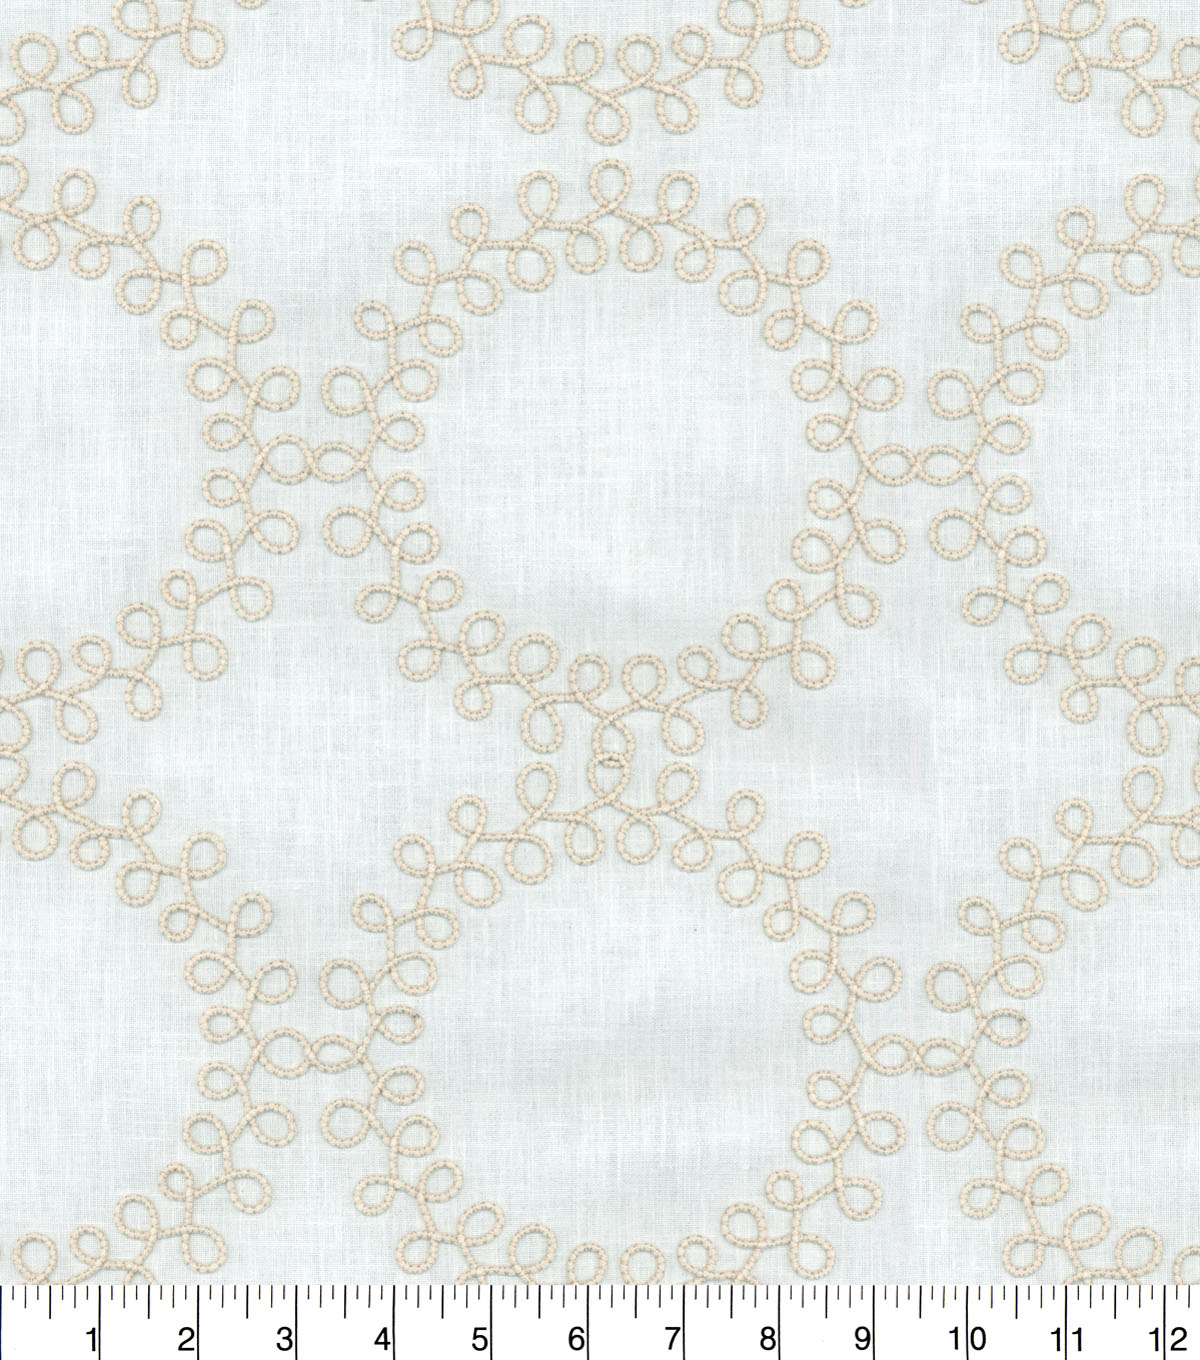 Waverly Upholstery Fabric 13x13\u0022 Swatch-Ready to Roll Emb Twine